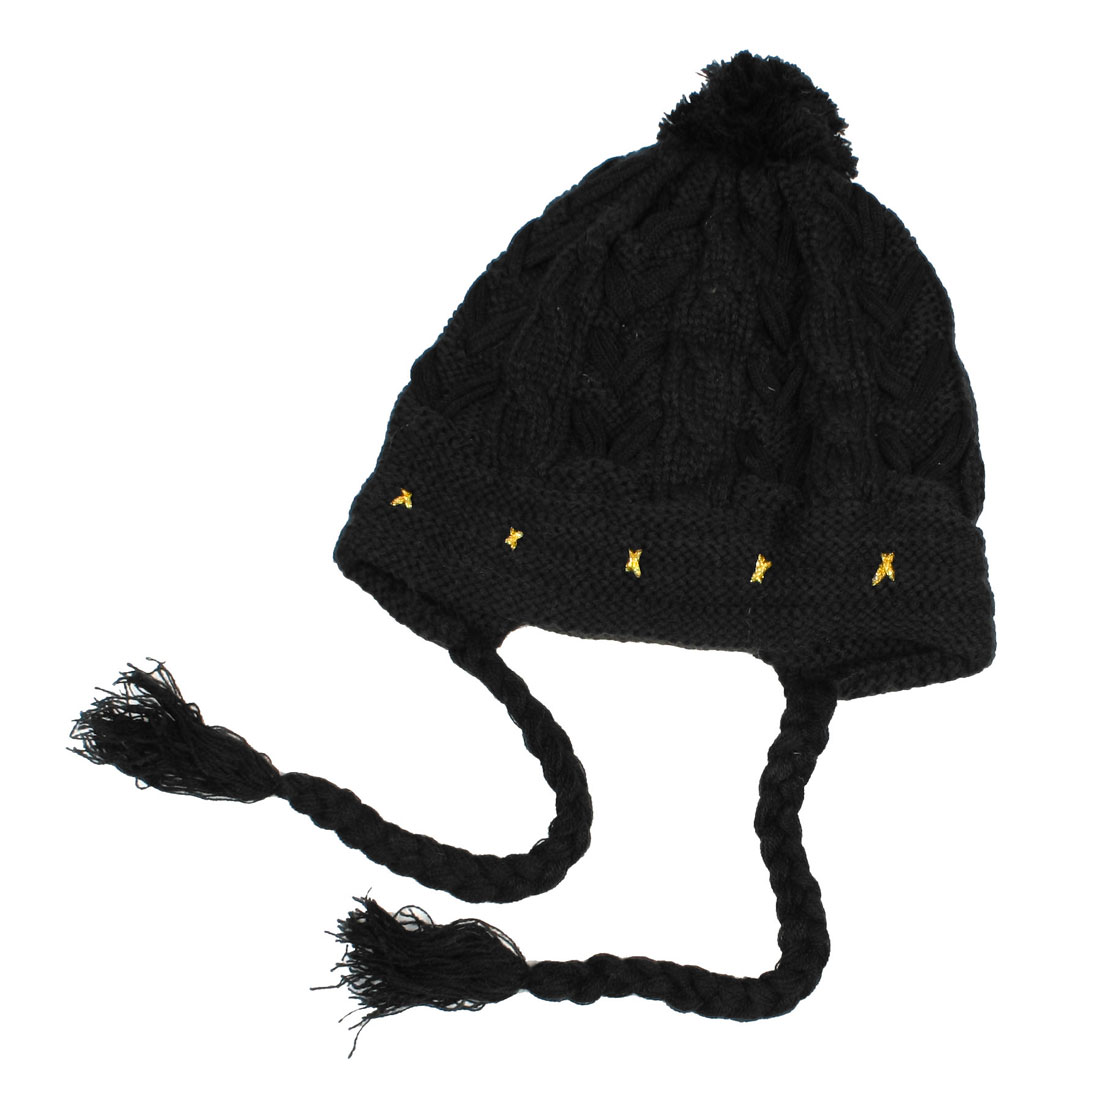 Lady Woman Gold Tone Black Pom-Pom Winter Warmer Cable-knit Beanies Hat Cap